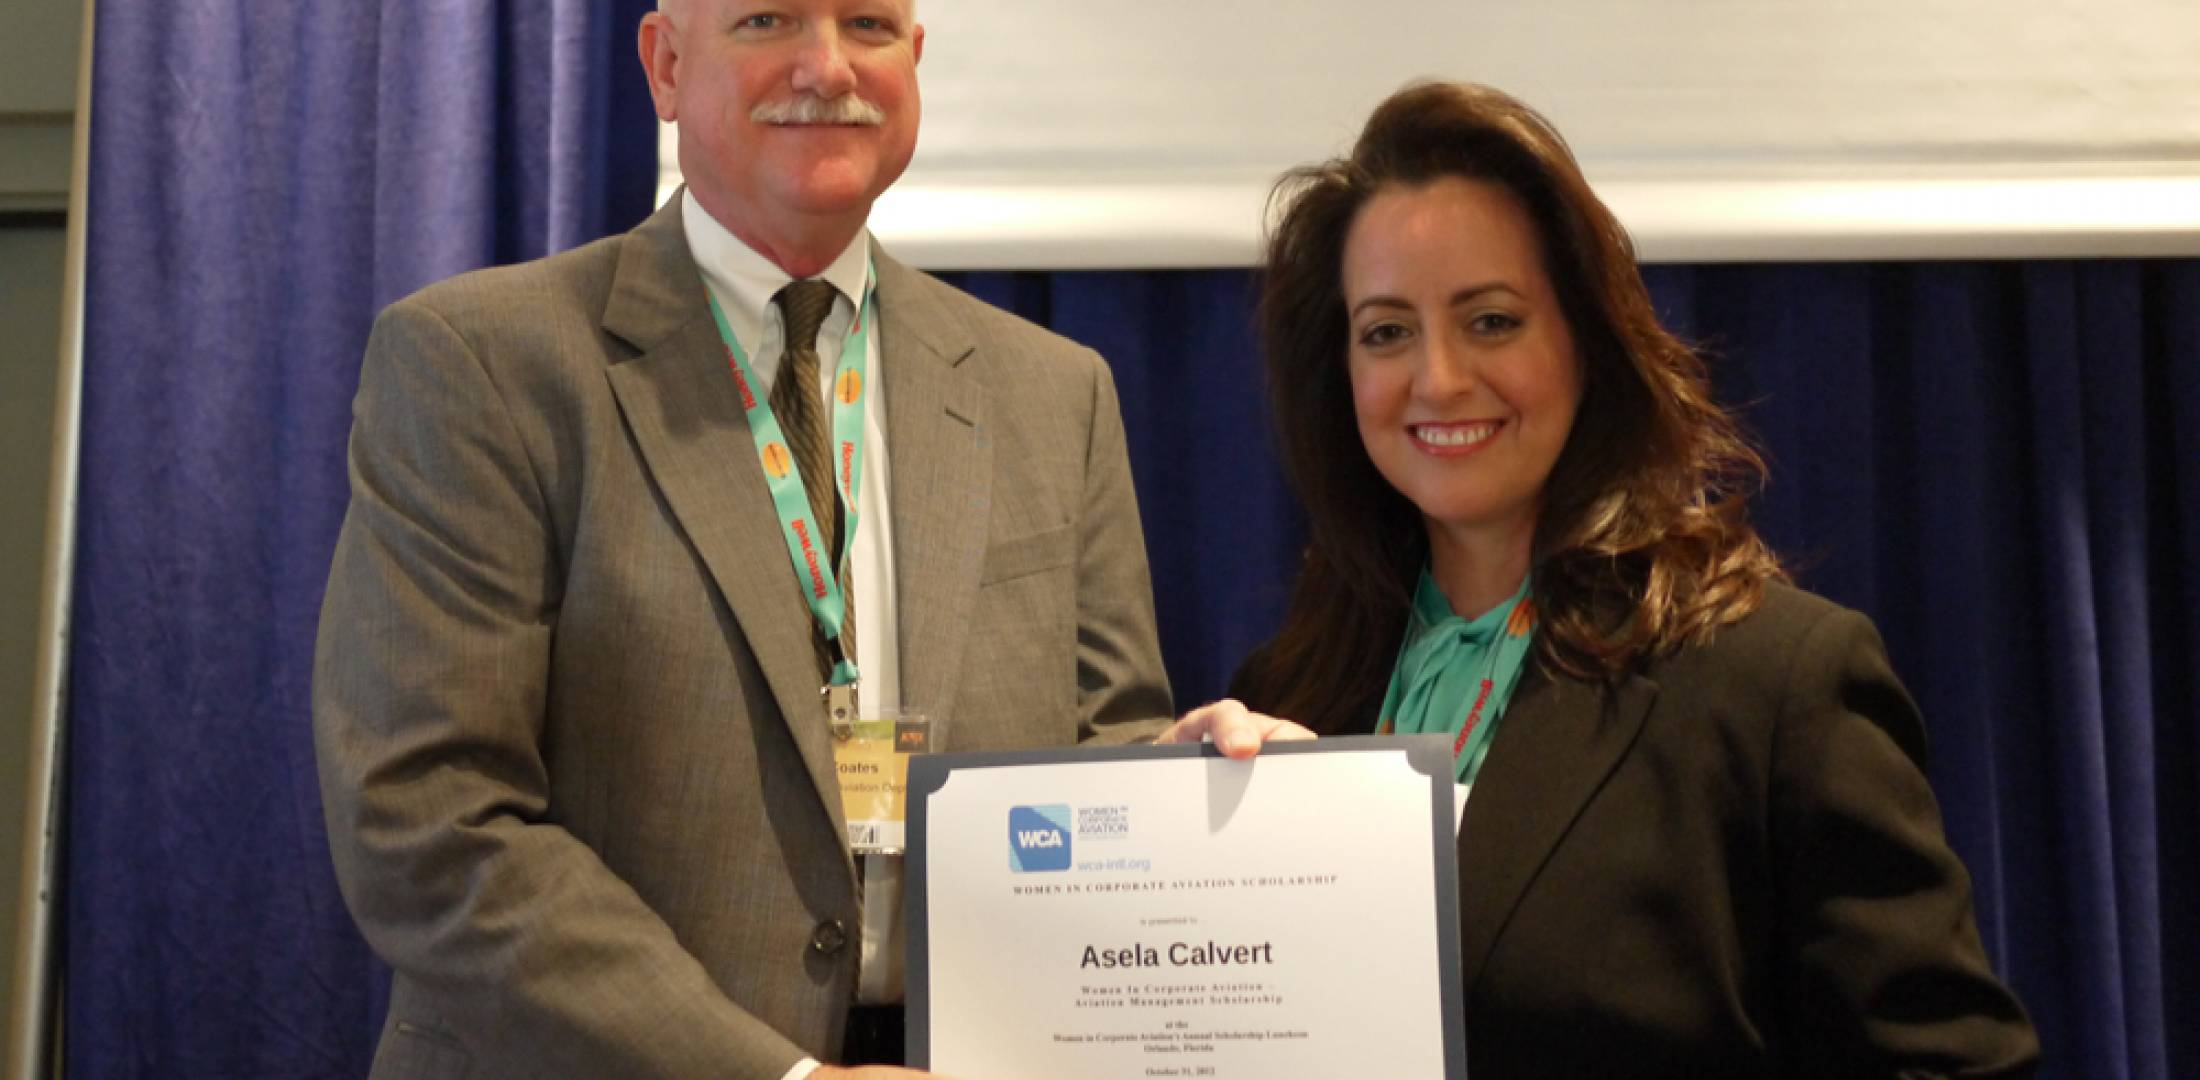 Women in Corporate Aviation Provides Opportunities at NBAA | News ...